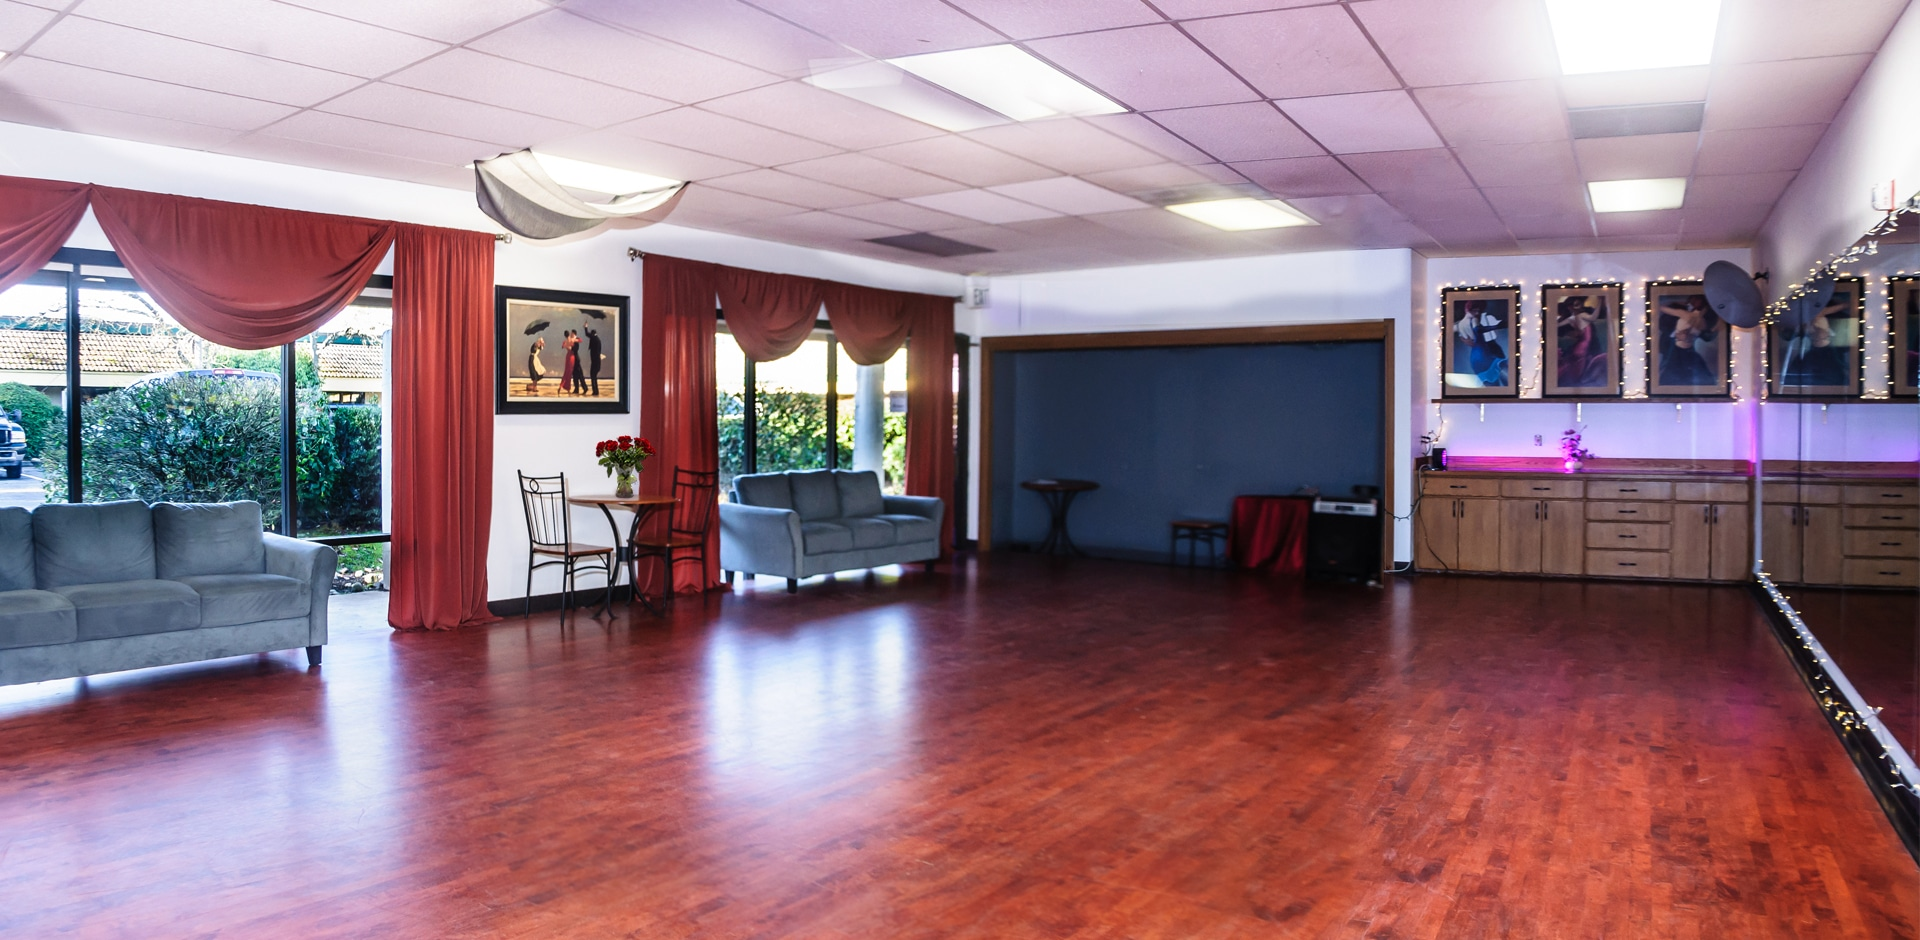 Rent Our Venue | Dance Parties | LaVida Dance Studio